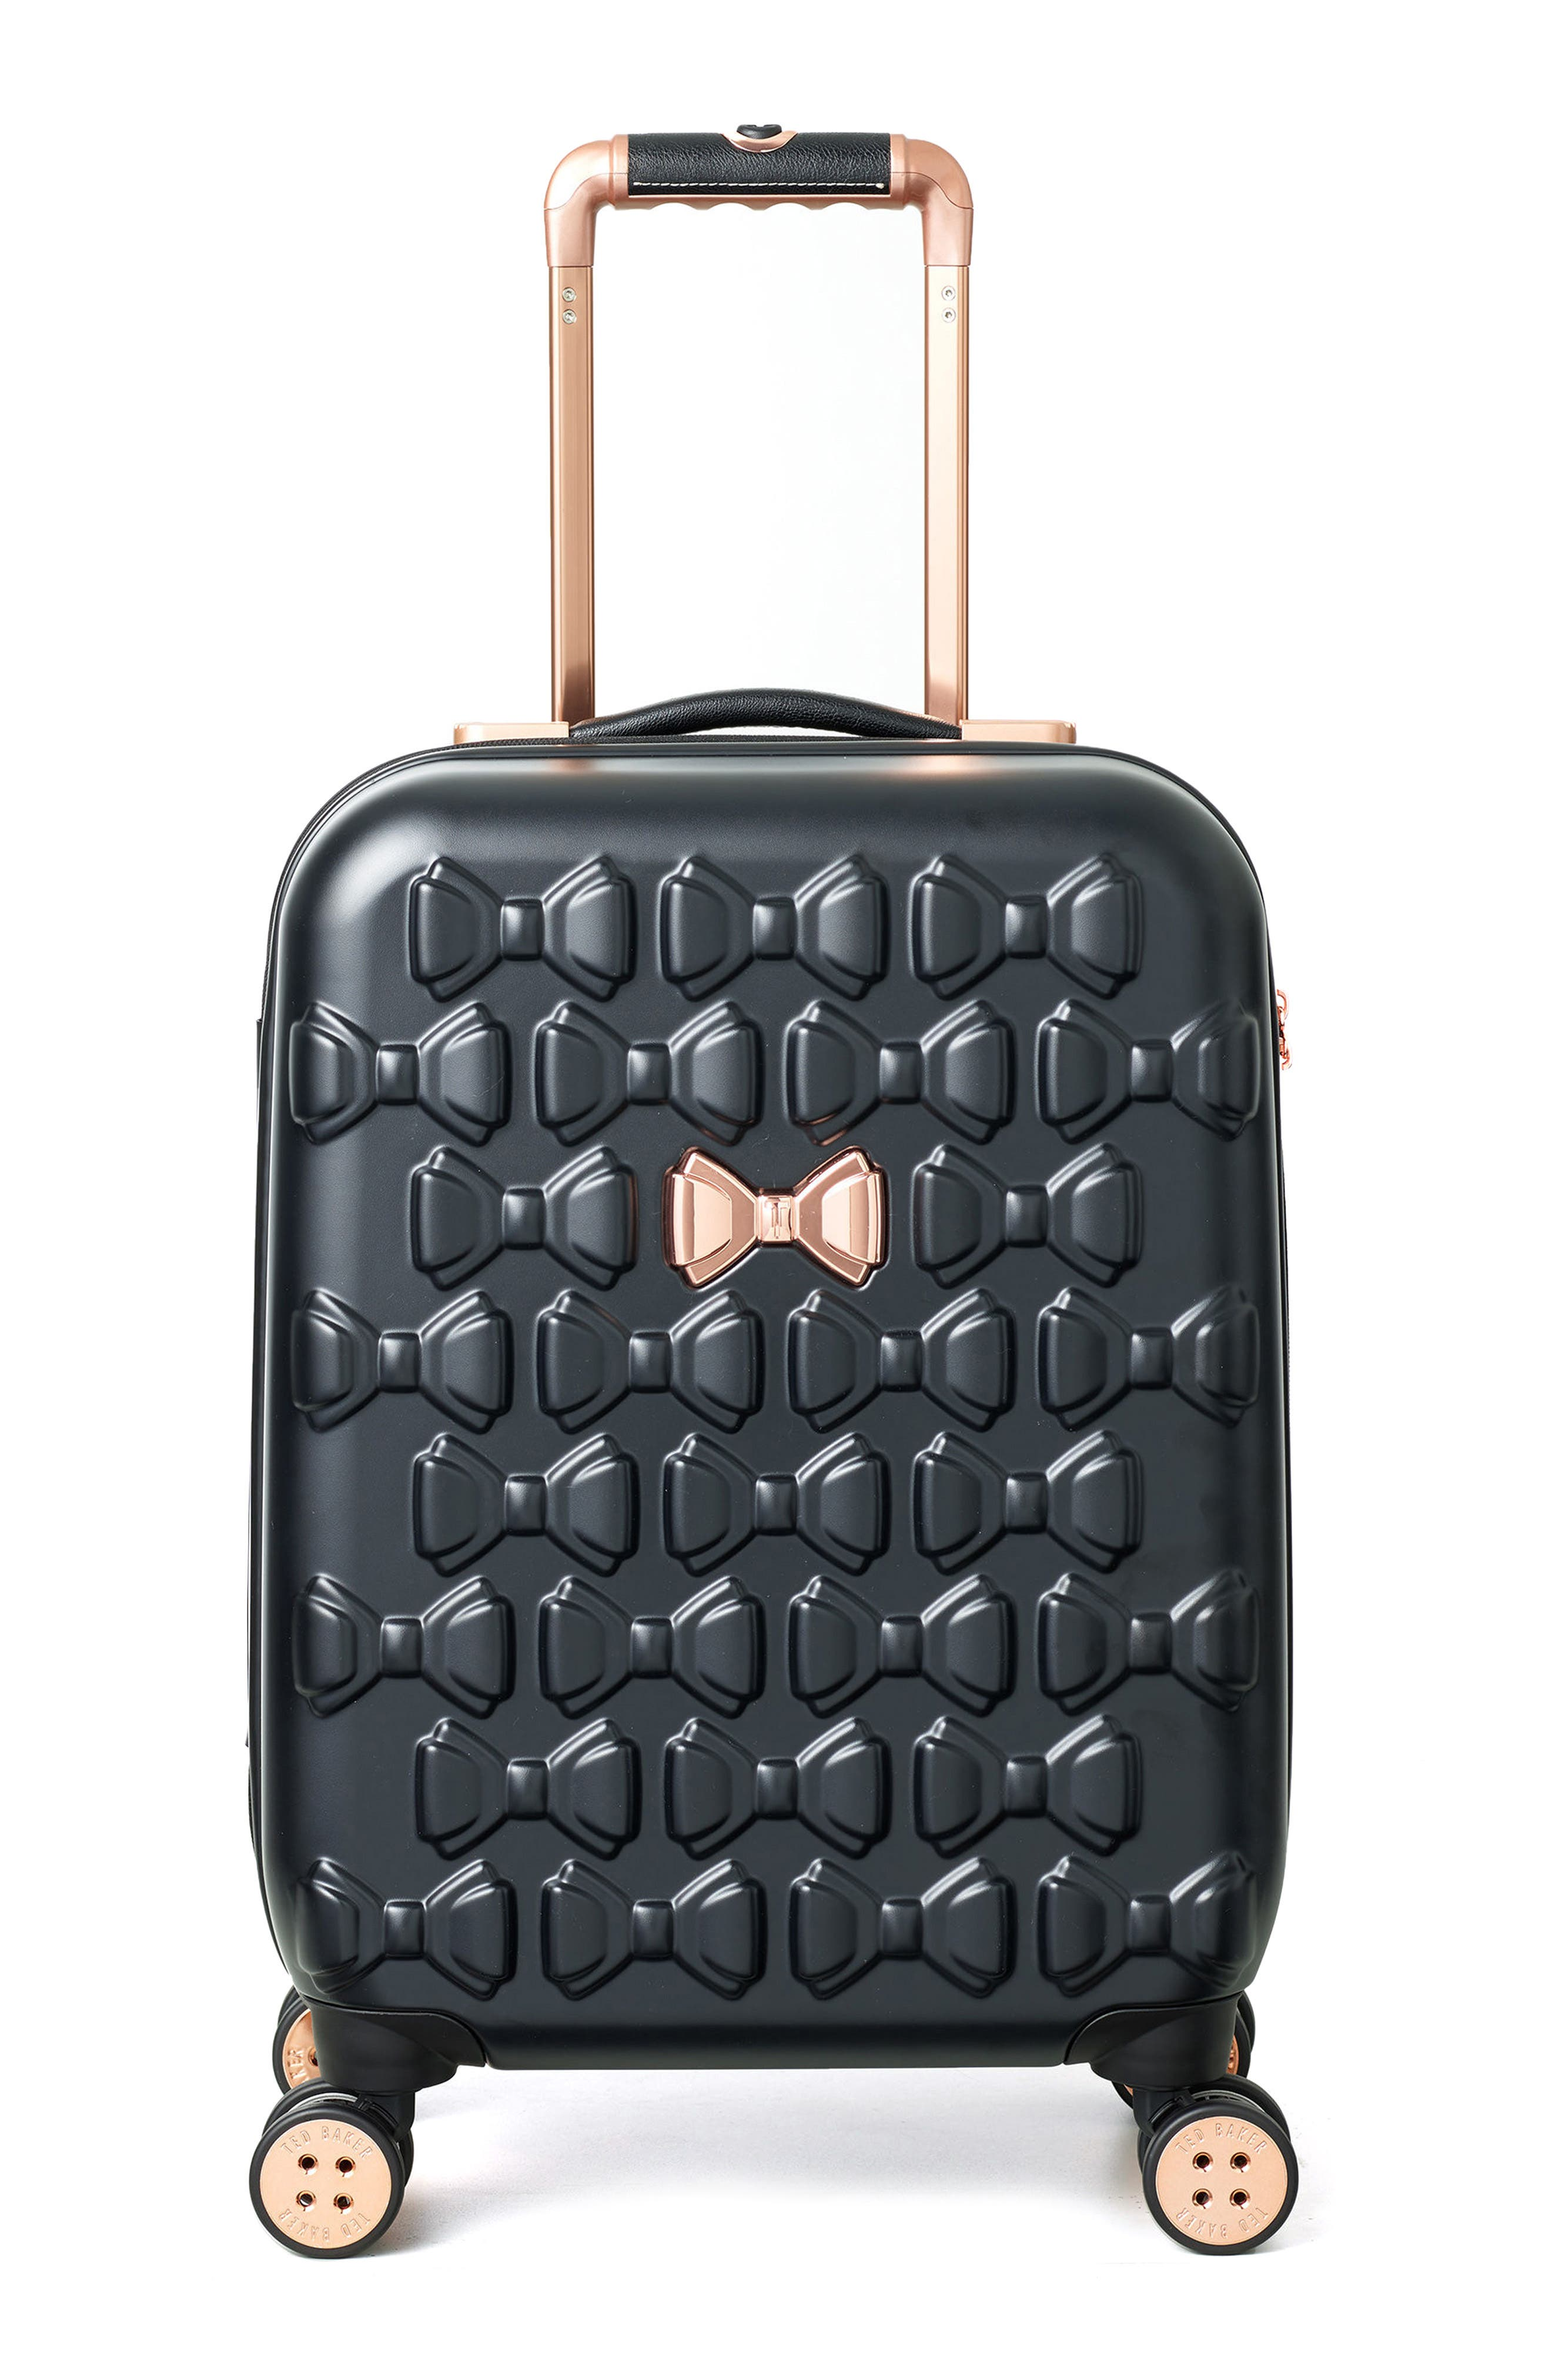 Main Image - Ted Baker London Small Beau 22-Inch Bow Embossed Four-Wheel Trolley Suitcase